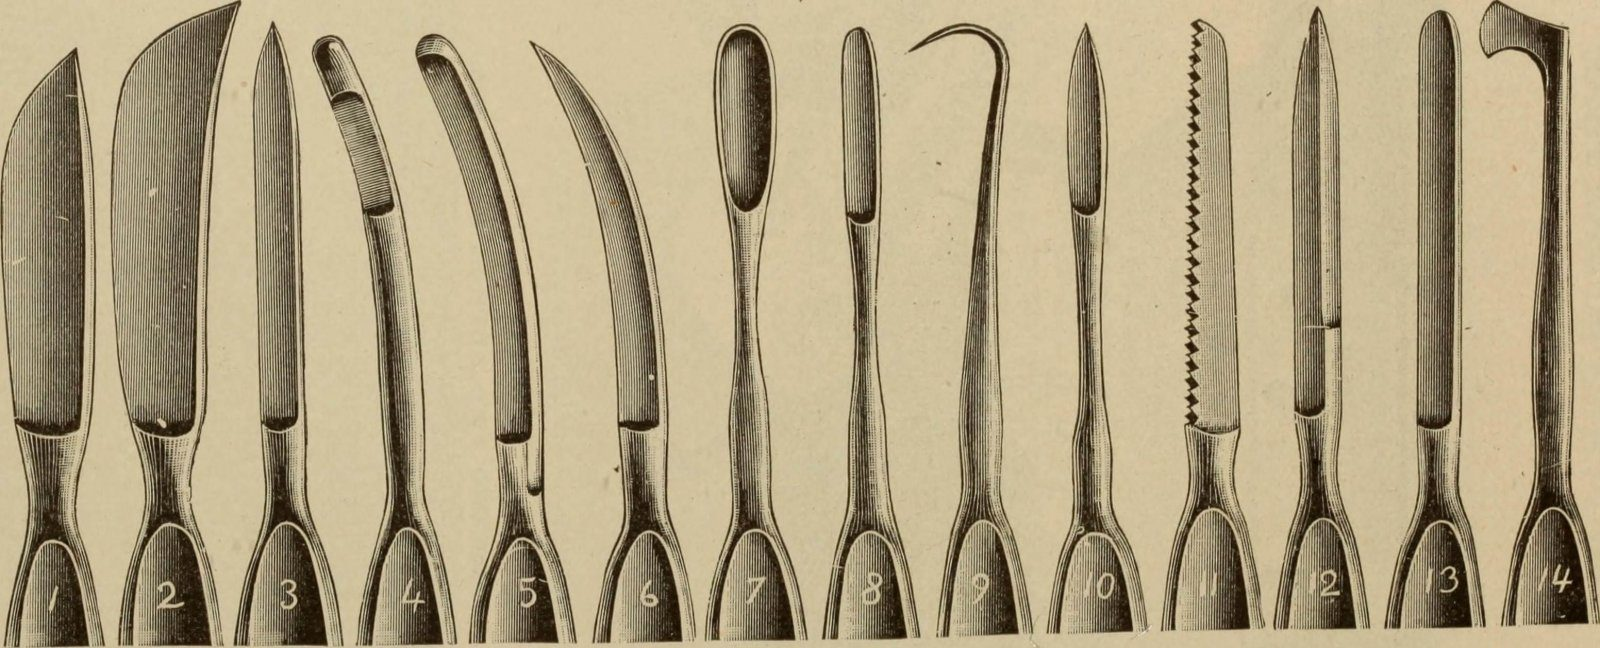 The Progression of Surgical Knives